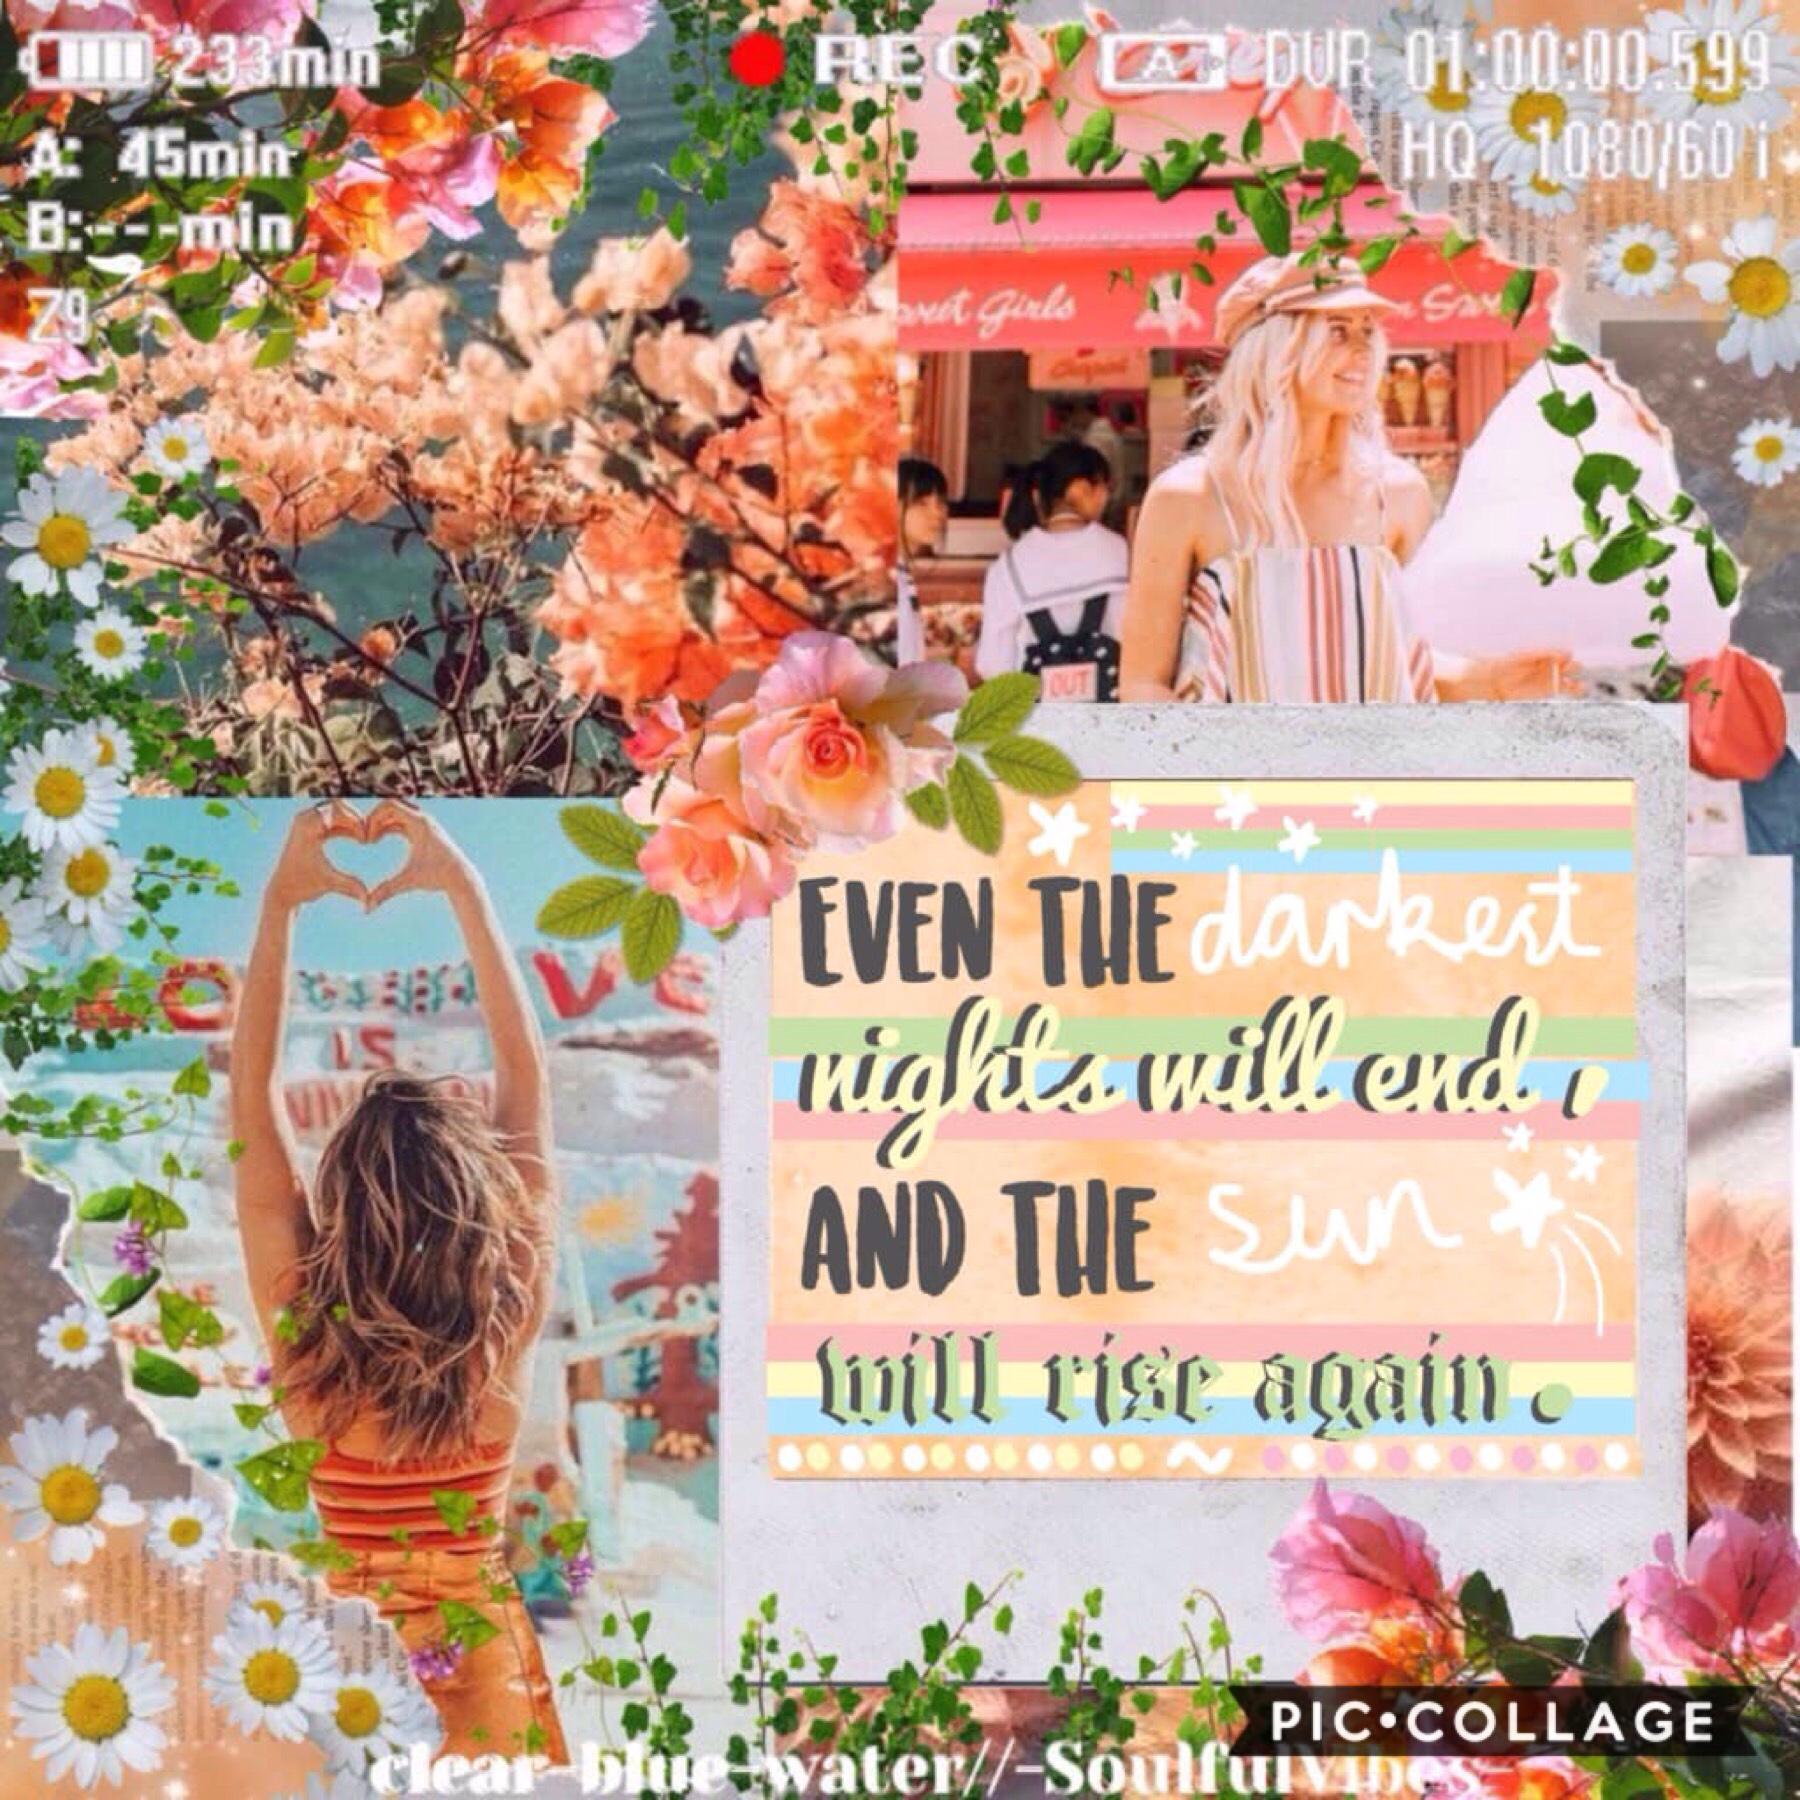 🌿T A P🌿 Collab with the amazing -SoulfulVibes-! She did the gorgeous text and I did the background. QOTD: What are your five most recent emojis? AOTD: 🌿💕💙🌊😂